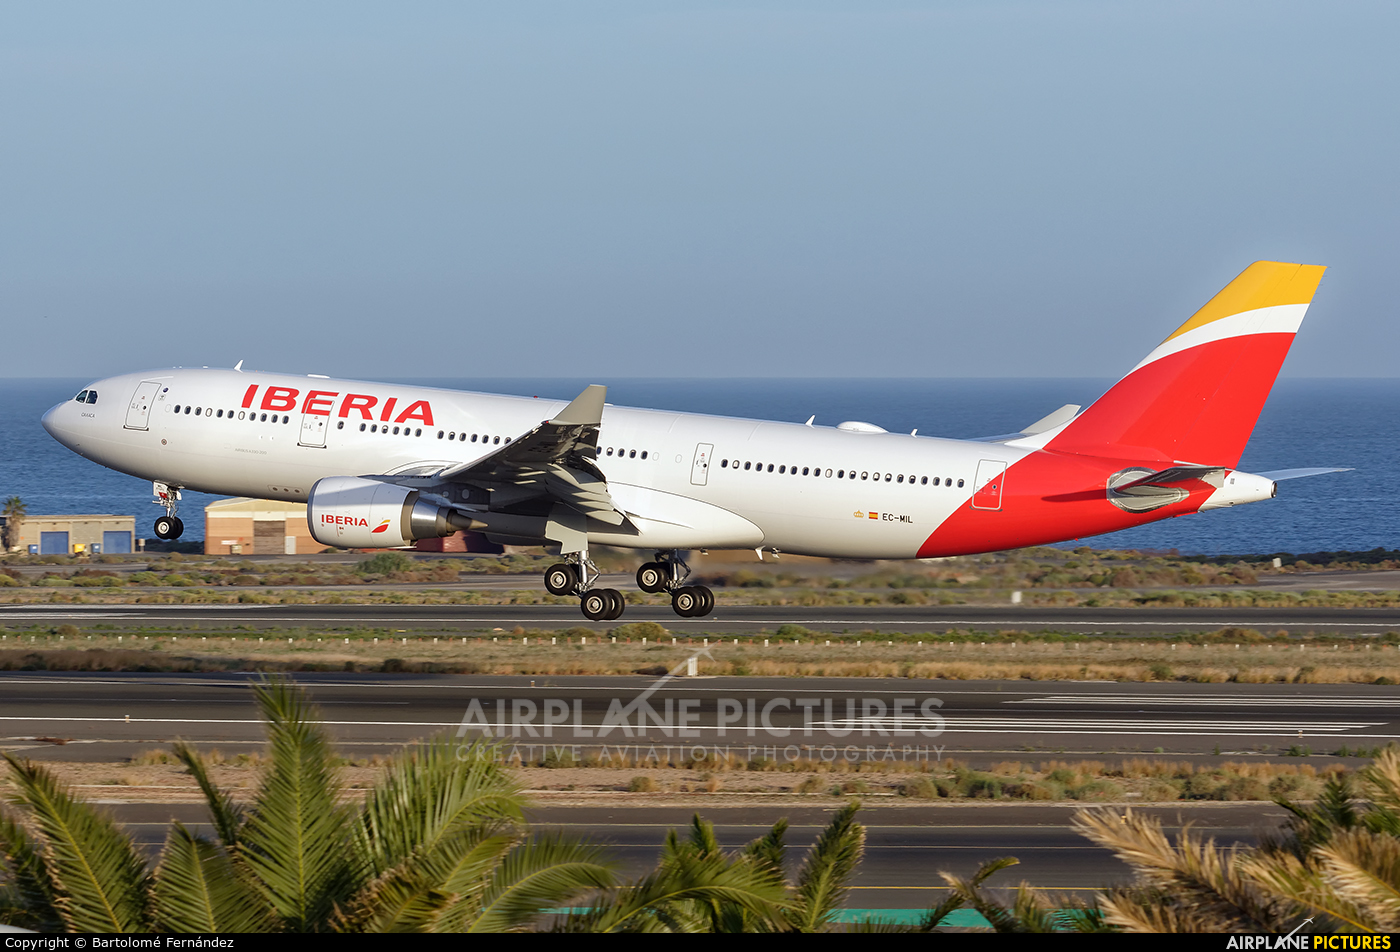 EC-MIL - Iberia Airbus A330-200 at Las Palmas de Gran Canaria | Photo ...: www.airplane-pictures.net/photo/667614/ec-mil-iberia-airbus-a330-200